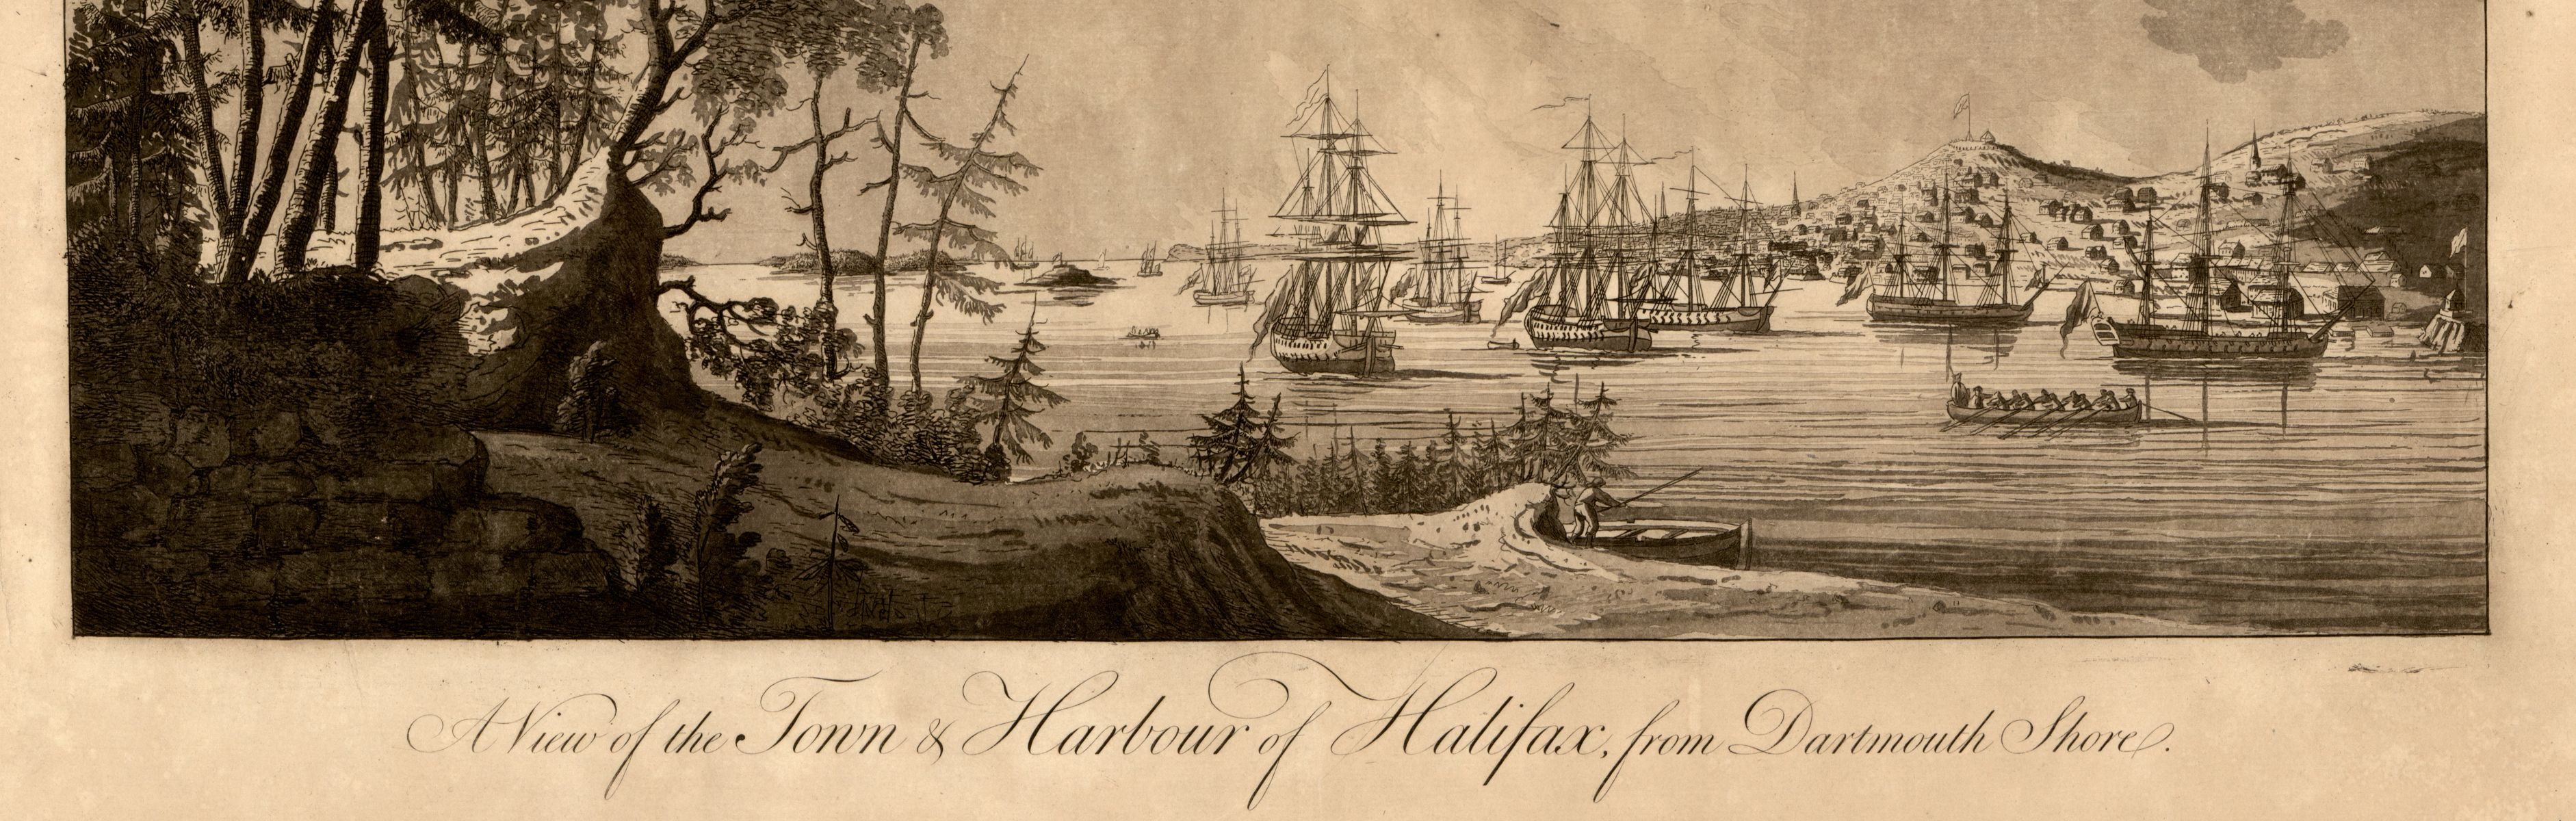 A view of Halifax in the Atlantic Neptune from the Library of Congress collection